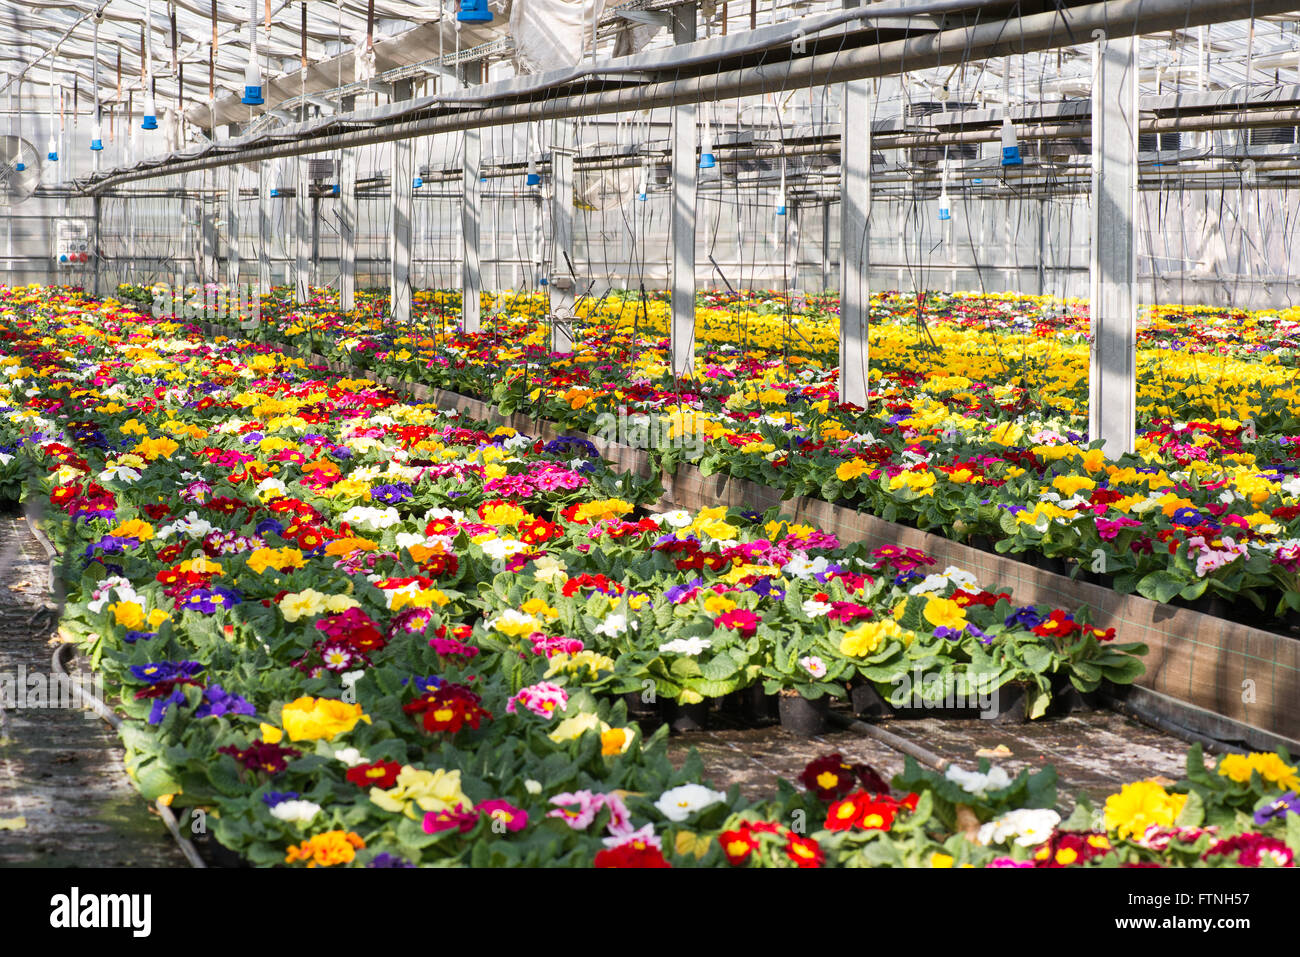 Colorful spring primroses growing in flowerpots in a large hothouse at a nursery - Stock Image